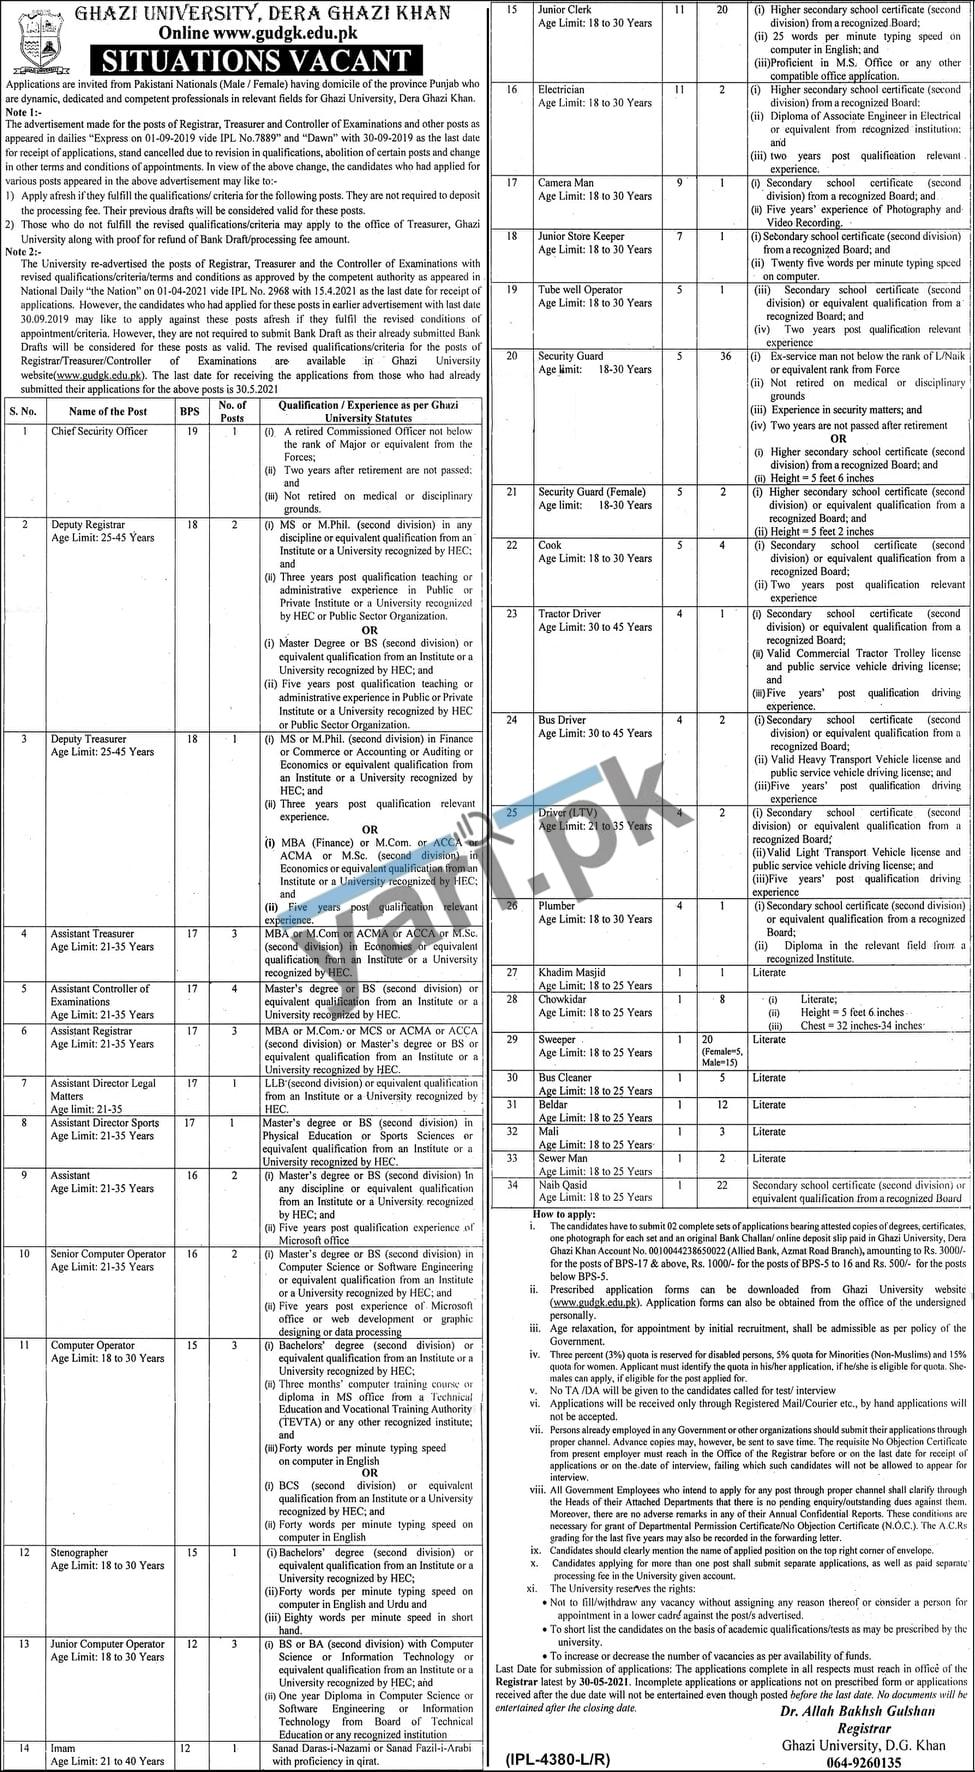 university-staff-jobs-2021-for-electrician-